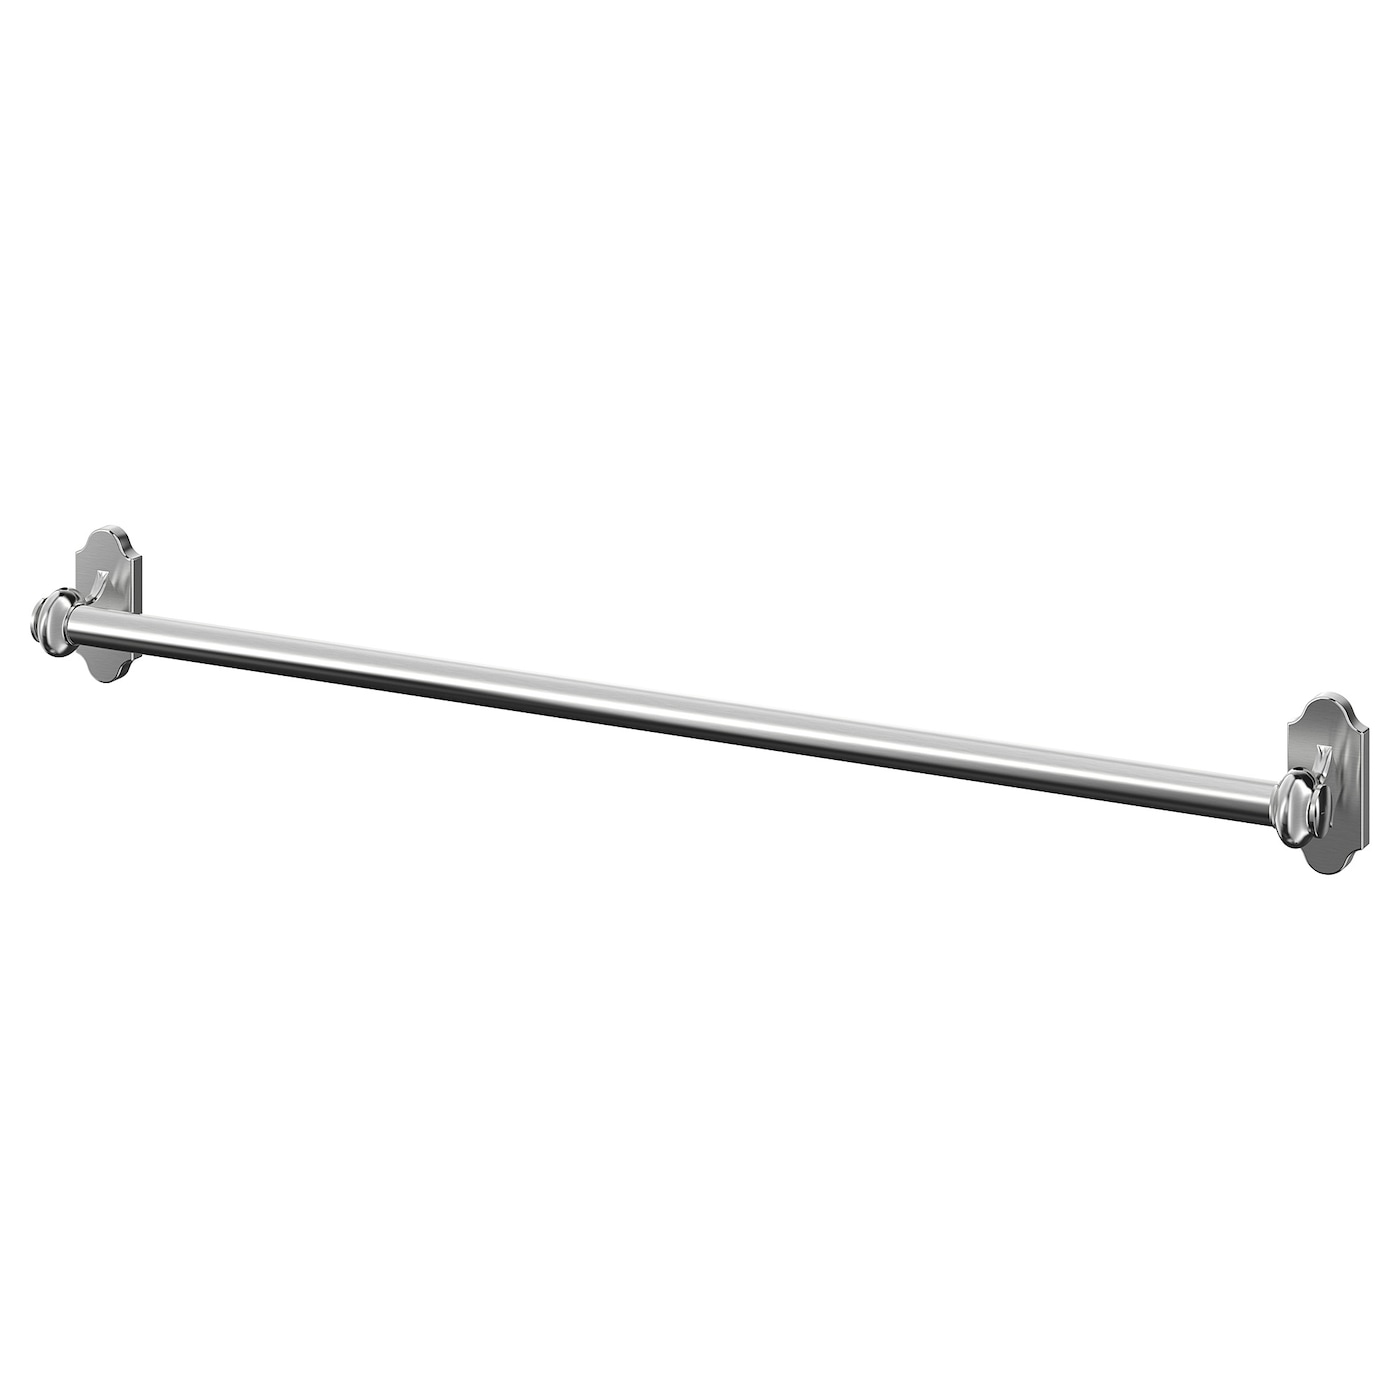 IKEA FINTORP rail For a longer rail, connect two FINTORP rails together using only one bracket.